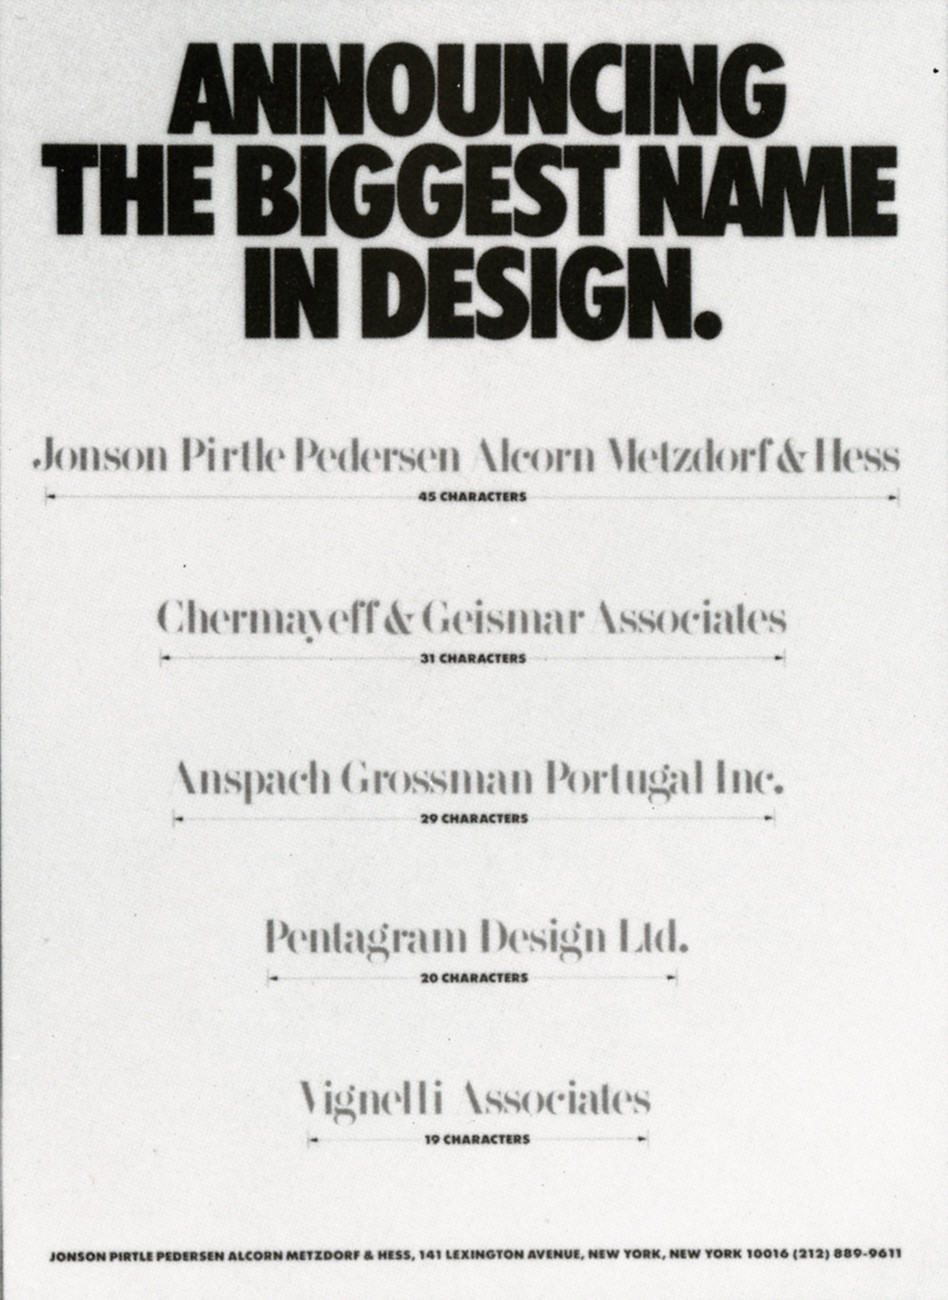 Announcing the Biggest Name in Graphic Design: Jonson Pirtle Pedersen Alcorn Metzdorf & Hess, New York, New York, 1986